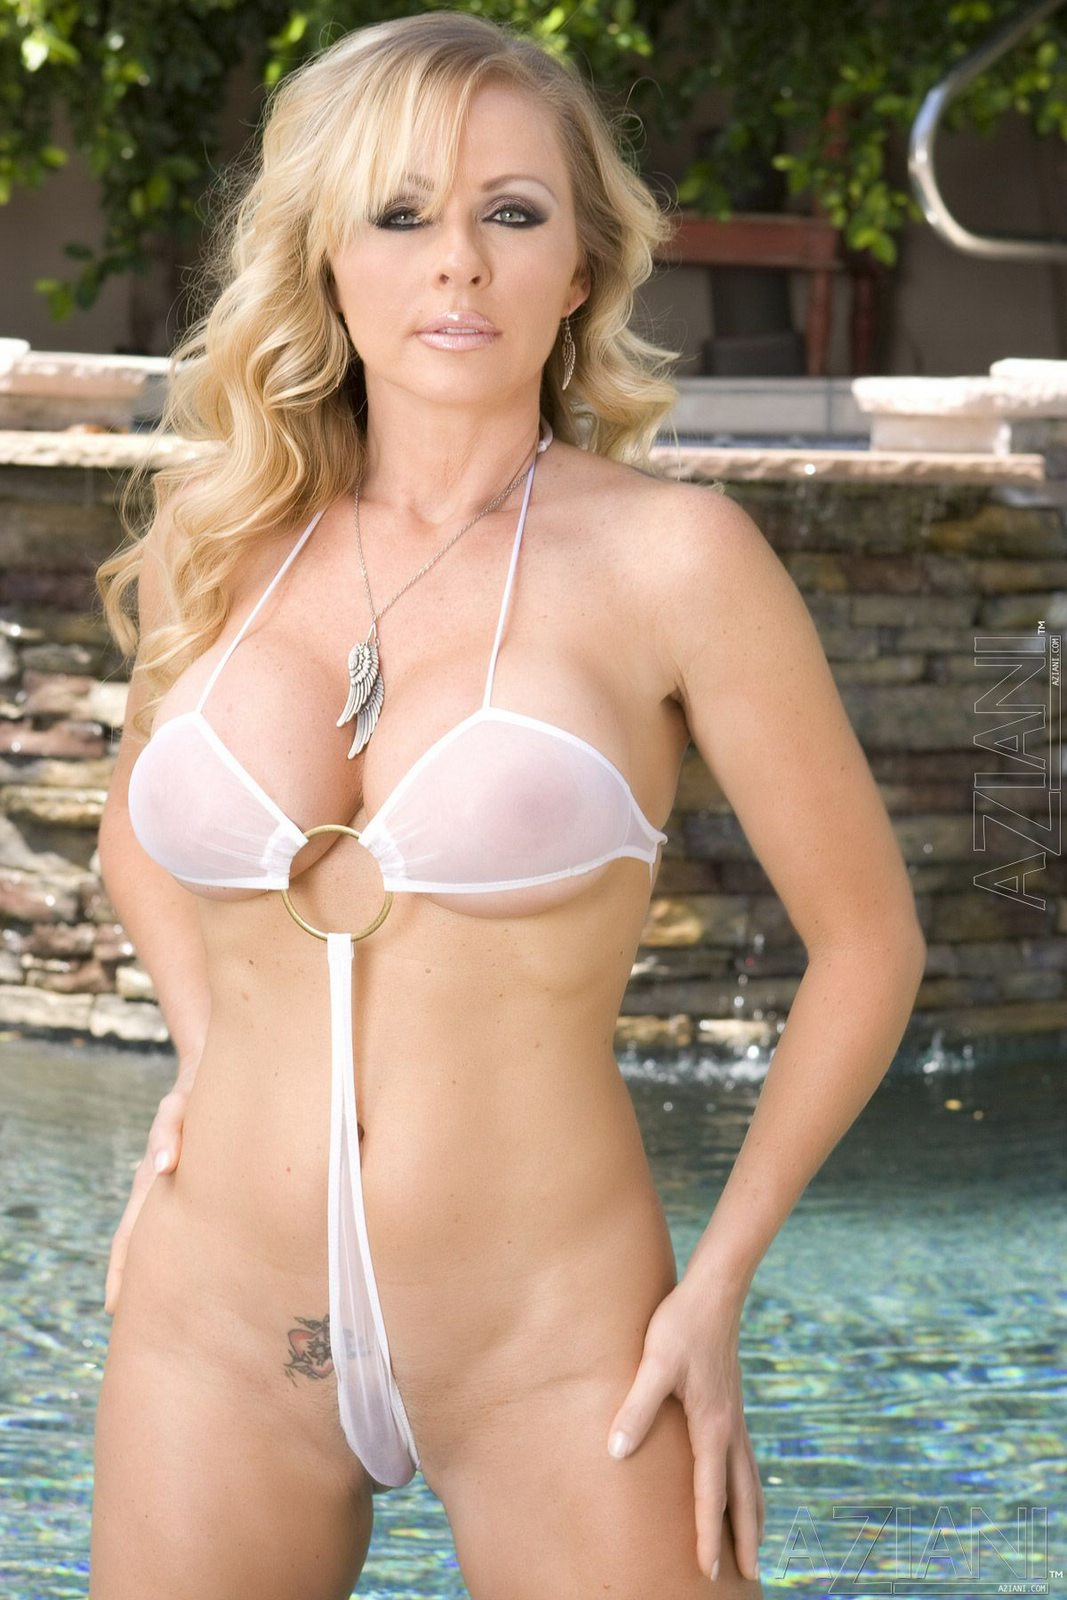 Hot bikini MILF Dyanna Lauren posing at the poolside - My ...